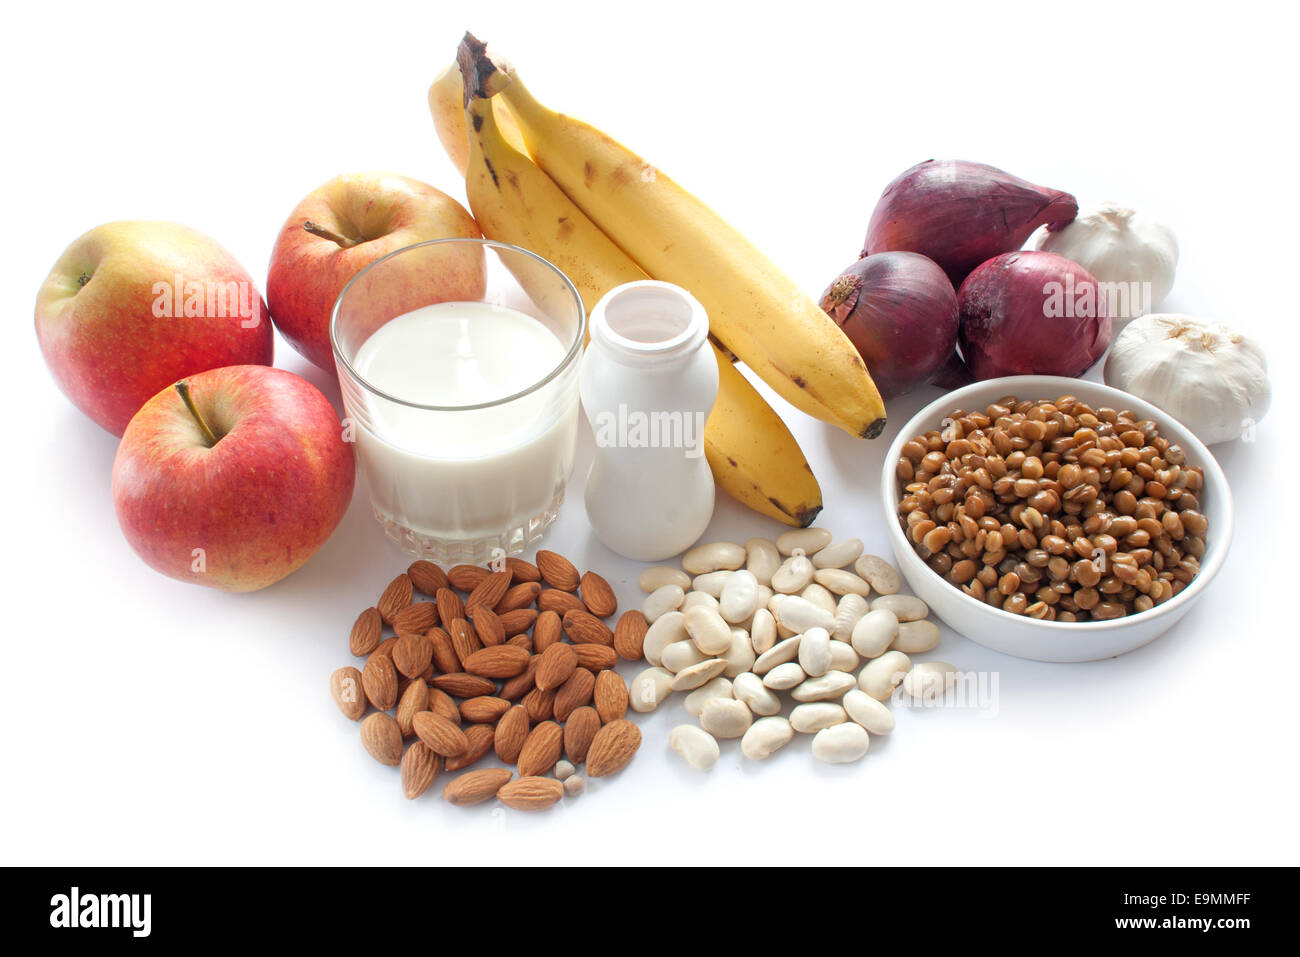 Probiotic (or prebiotic) rich foods including pulses, nuts, fruit and milk products, good for immunity and the gut - Stock Image